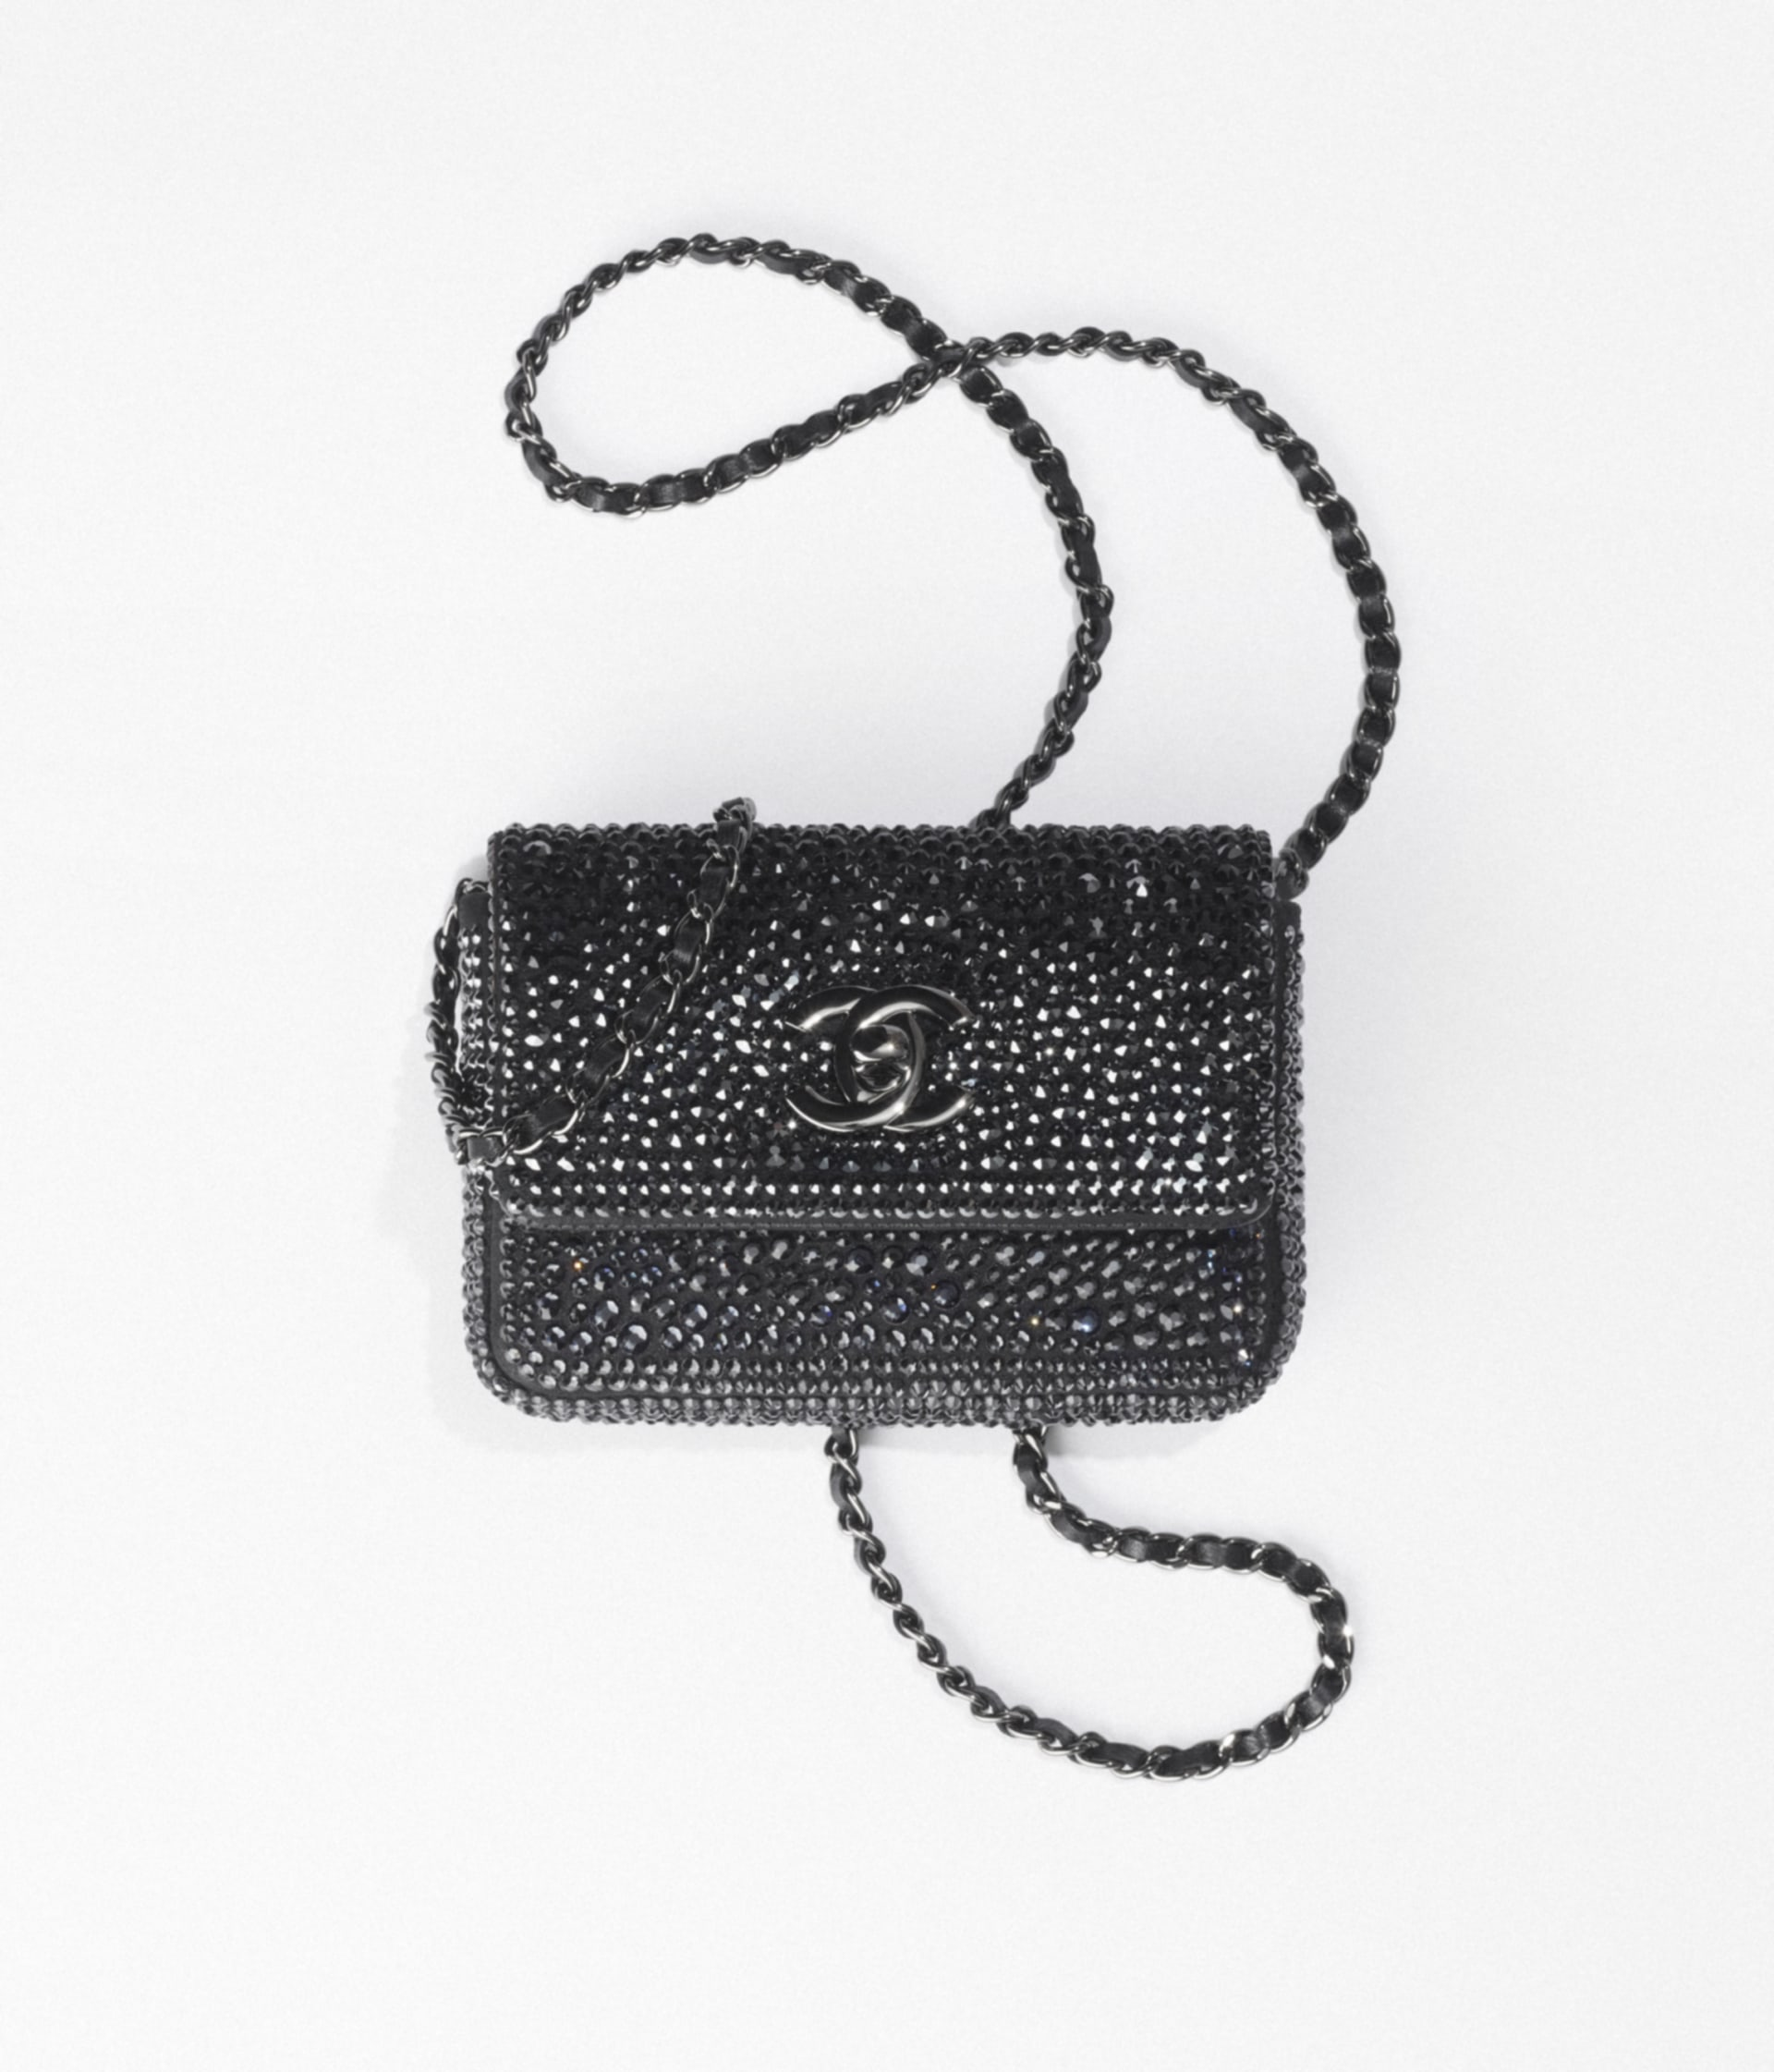 image 1 - Clutch with Chain - Strass, Lambskin & Ruthenium-Finish Metal - Black